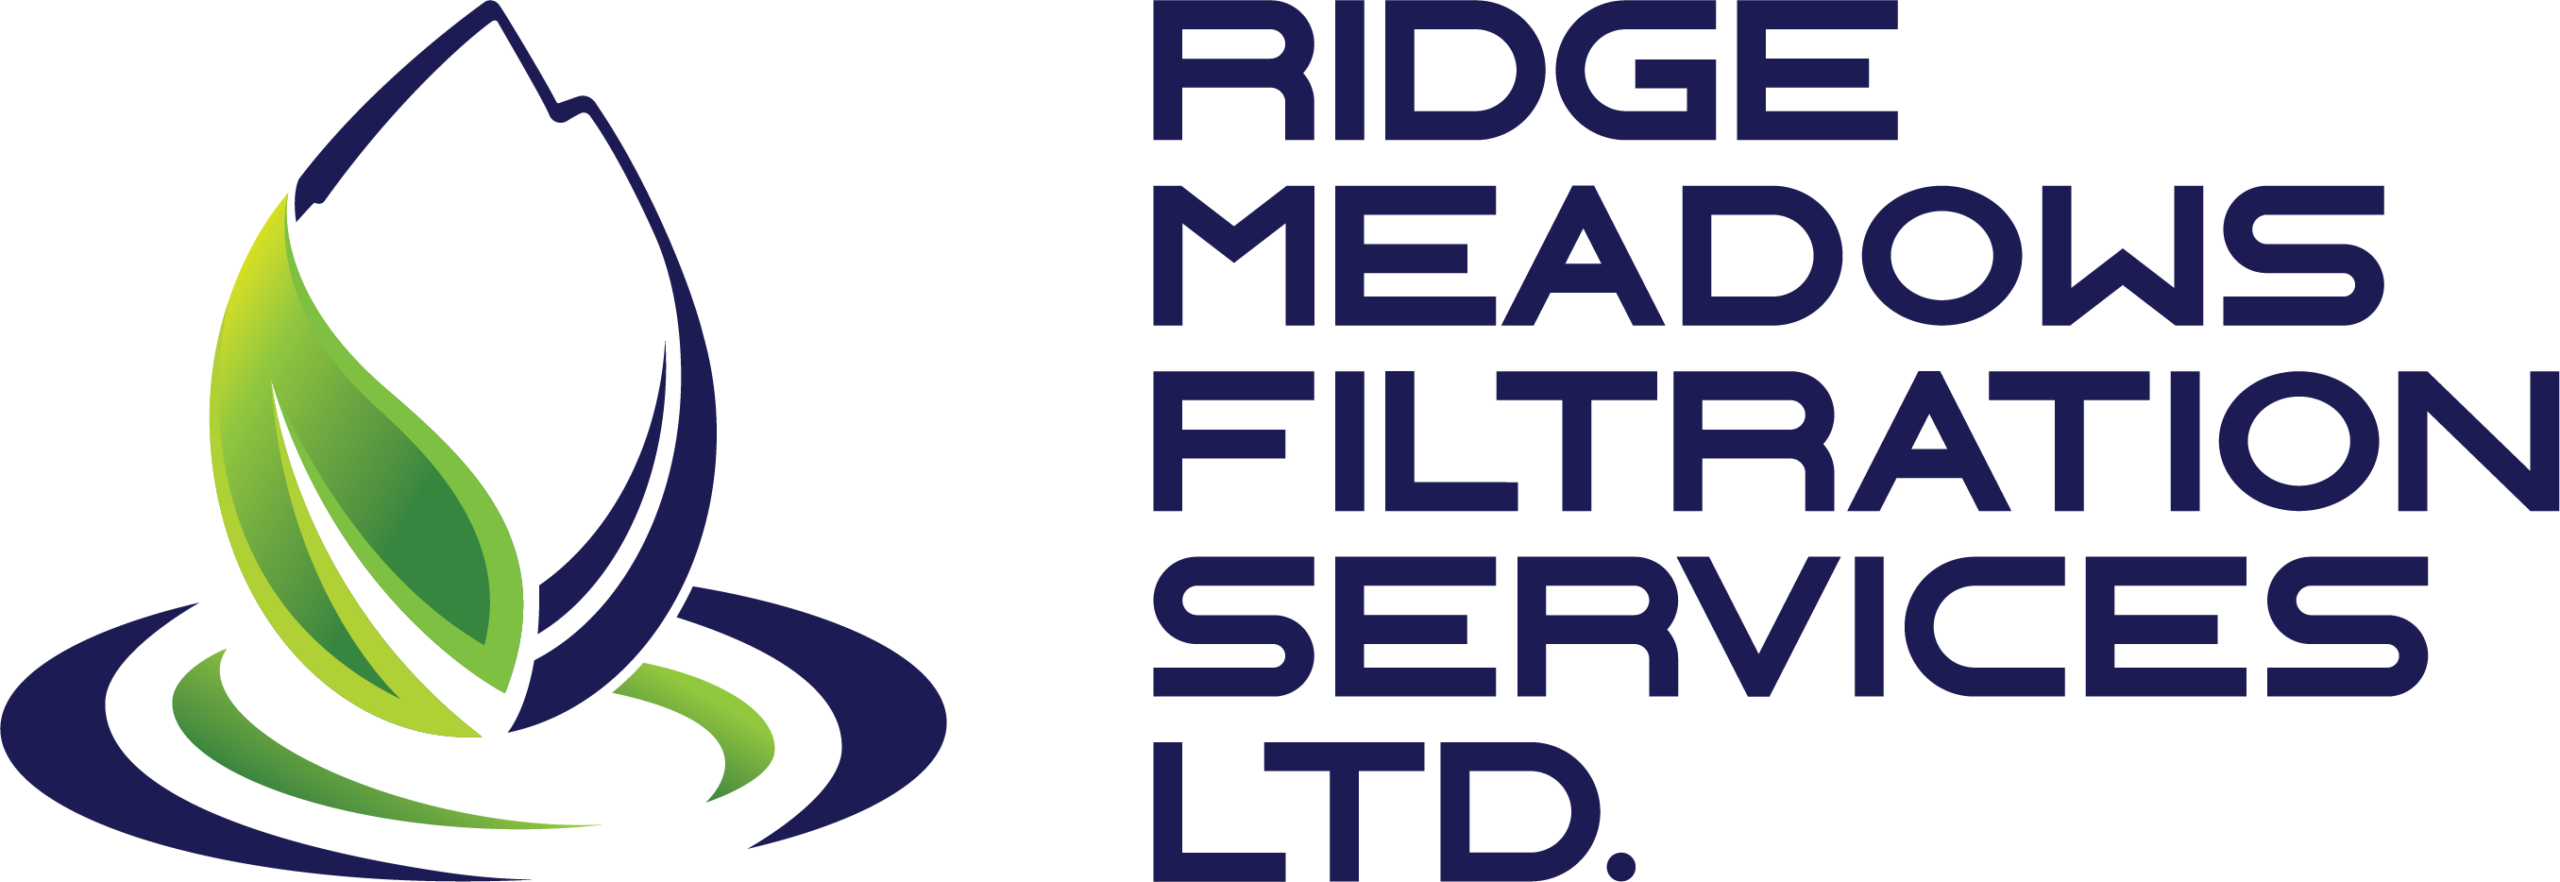 Ridge Meadows Filtration Services Ltd.